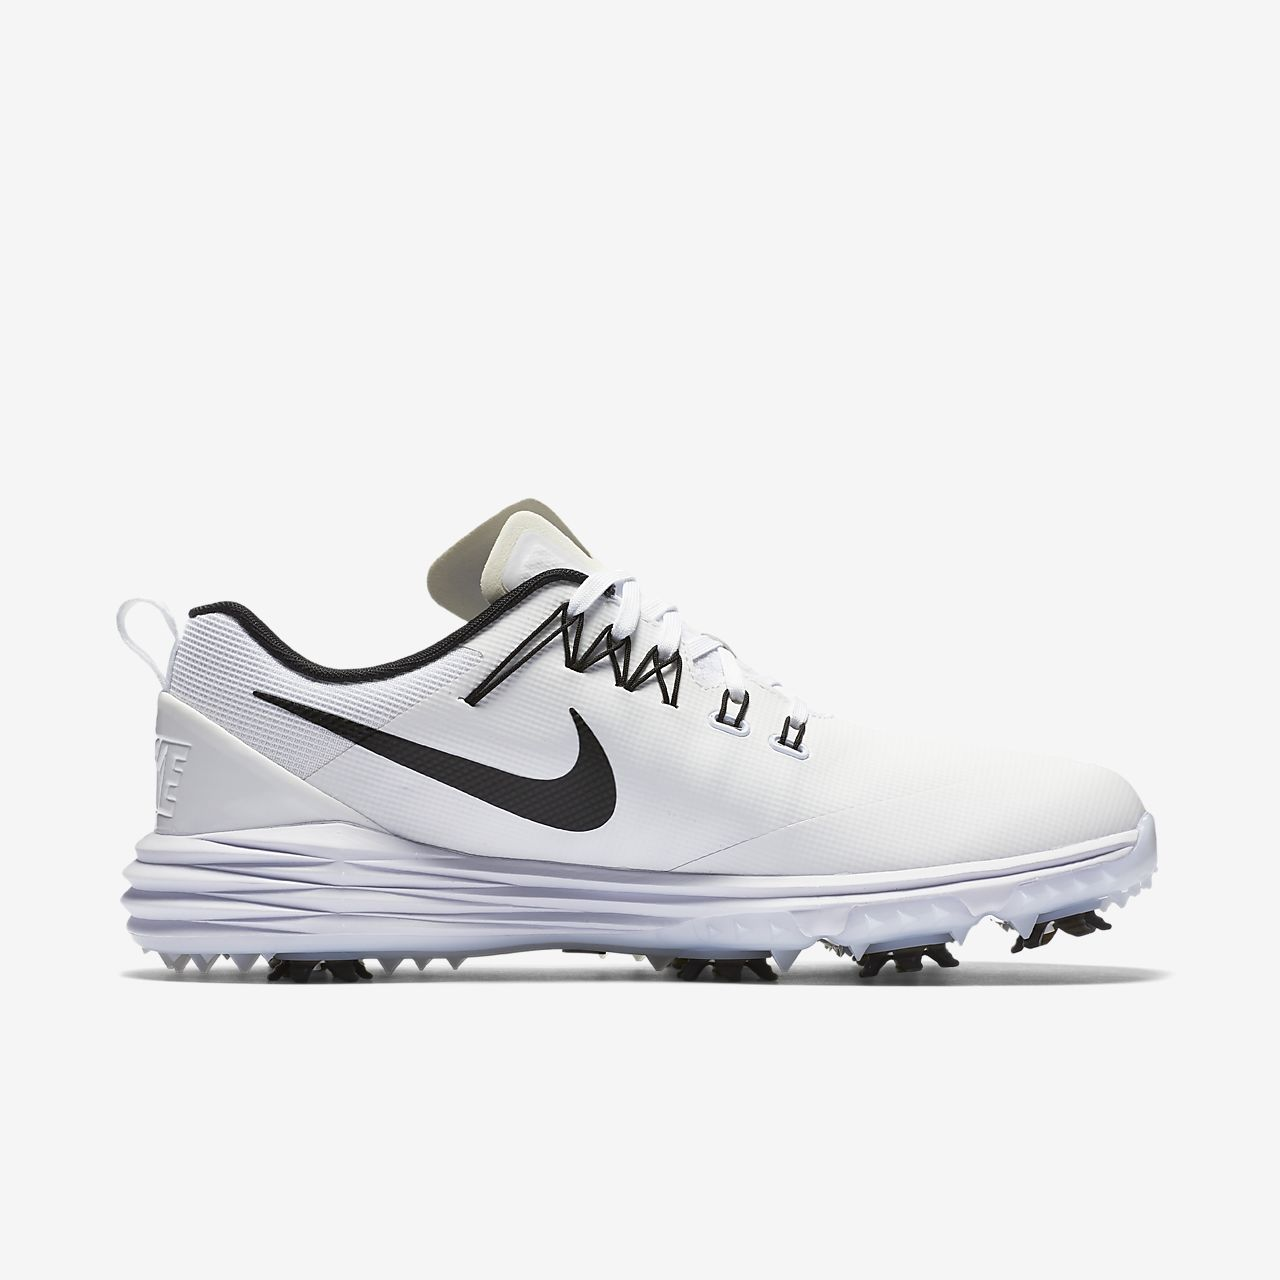 ... Nike Lunar Command 2 Women's Golf Shoe